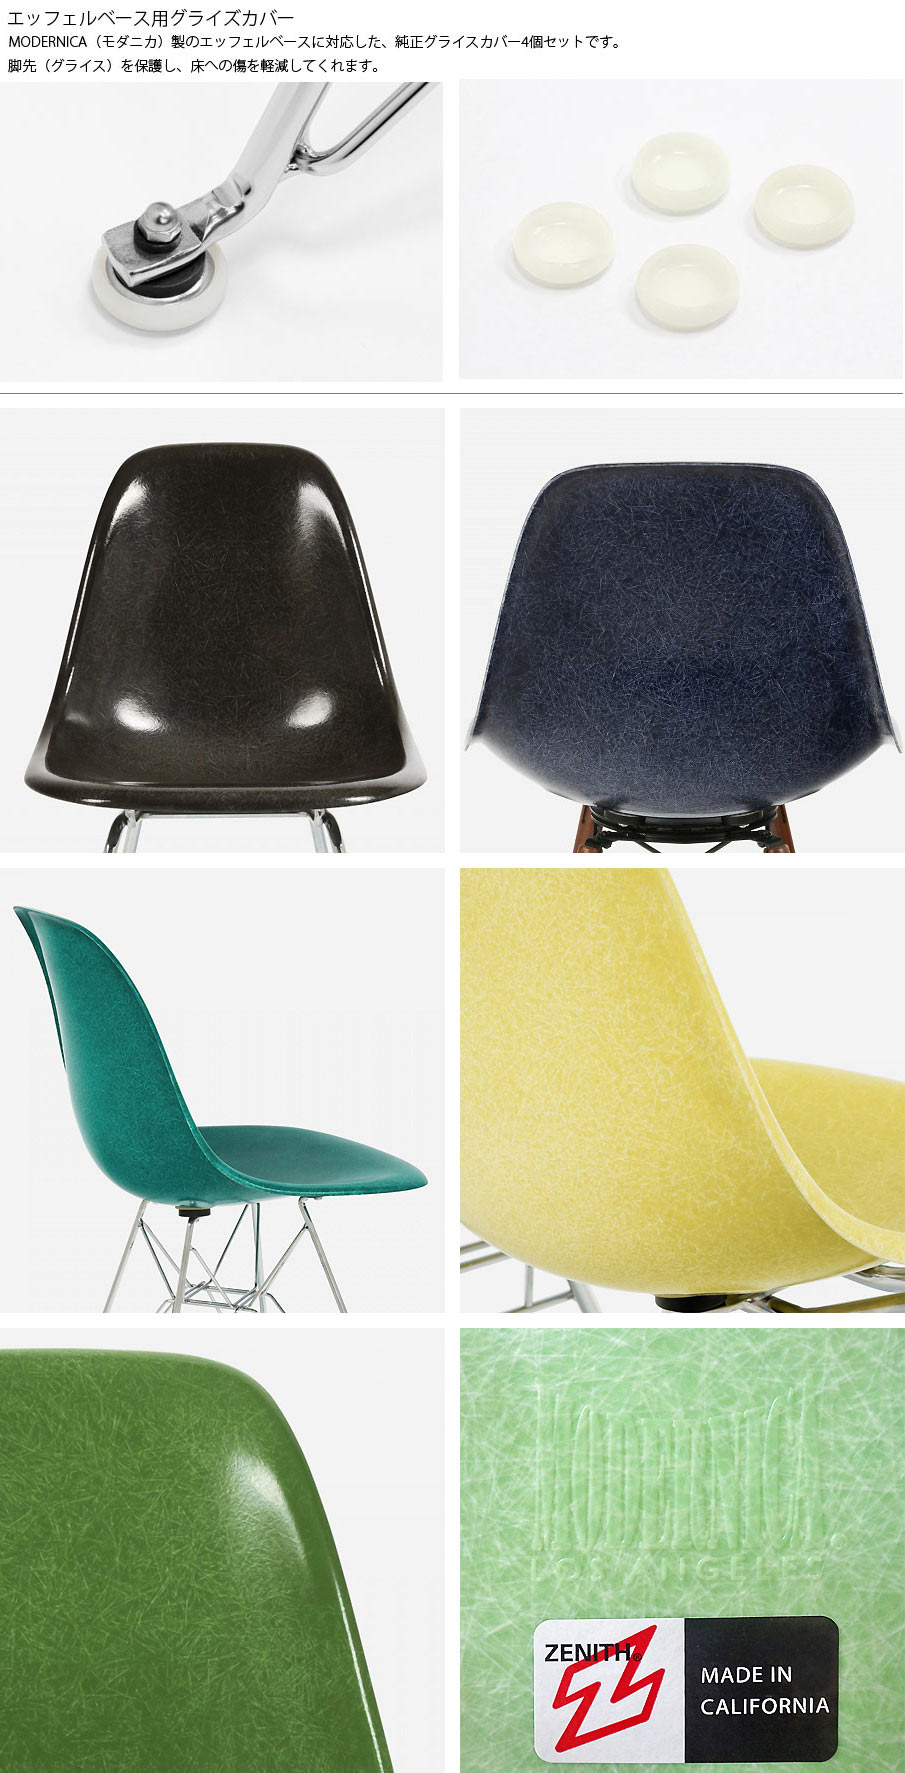 MODERNICA Fiberglass Side Shell Chair 詳細